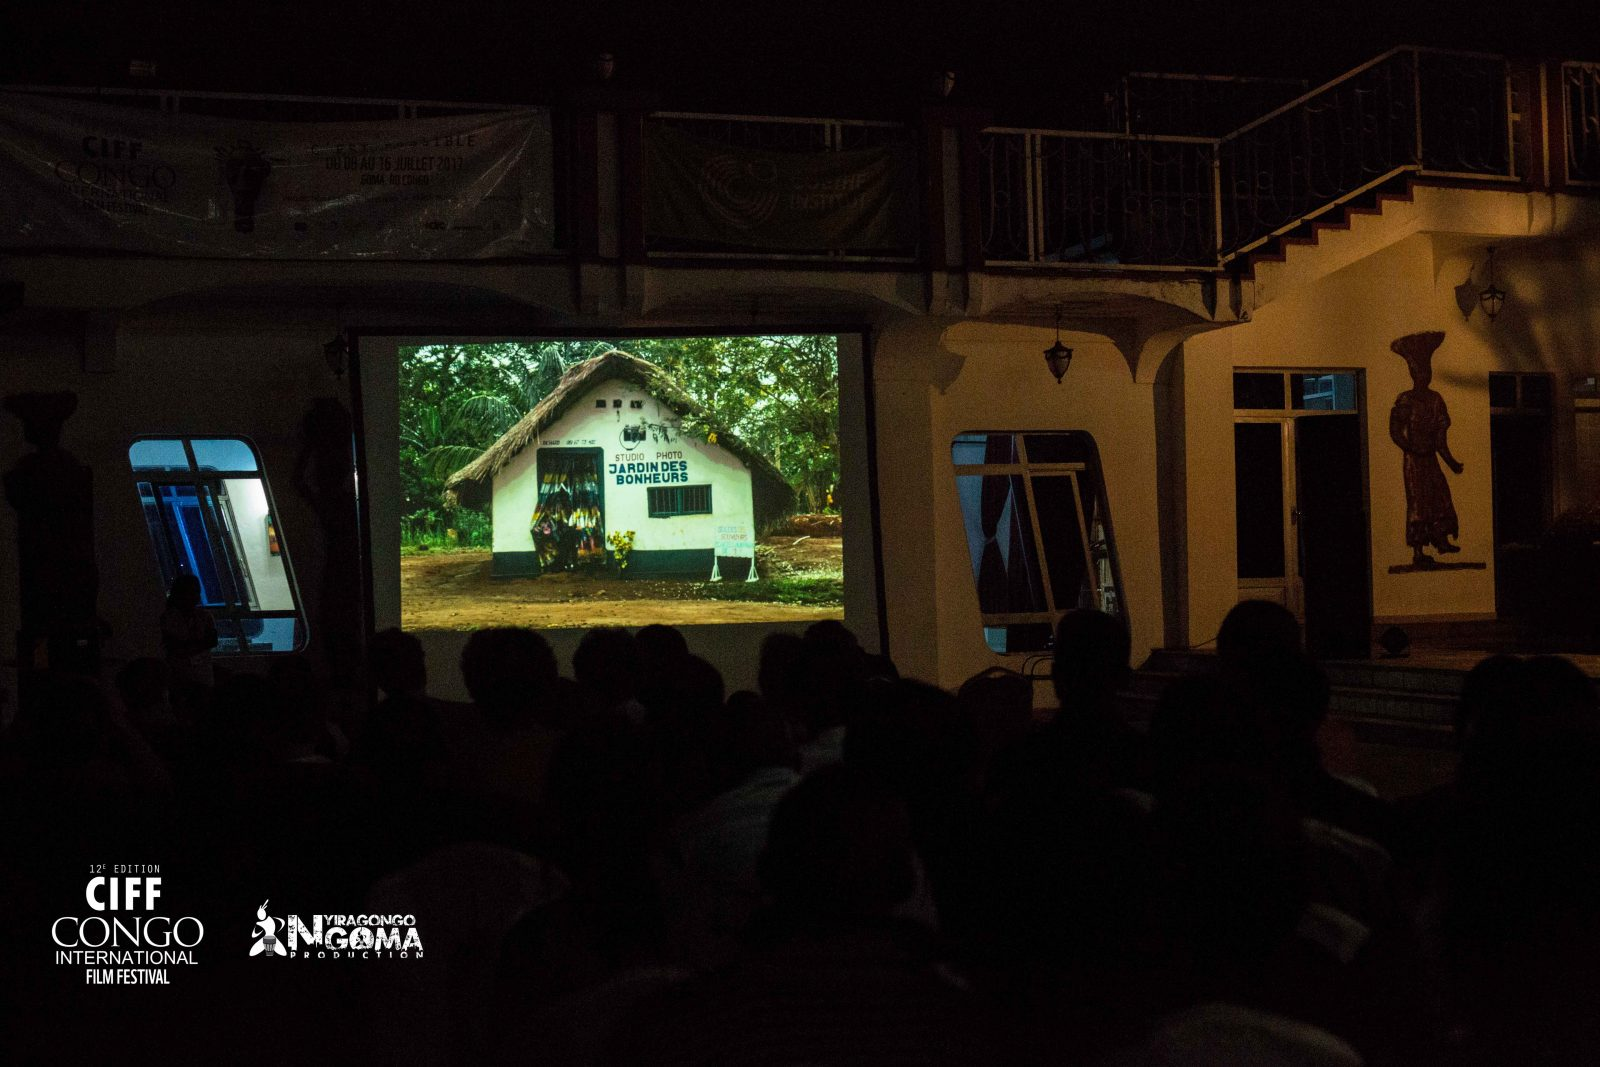 projection-ciff-yoleafrica